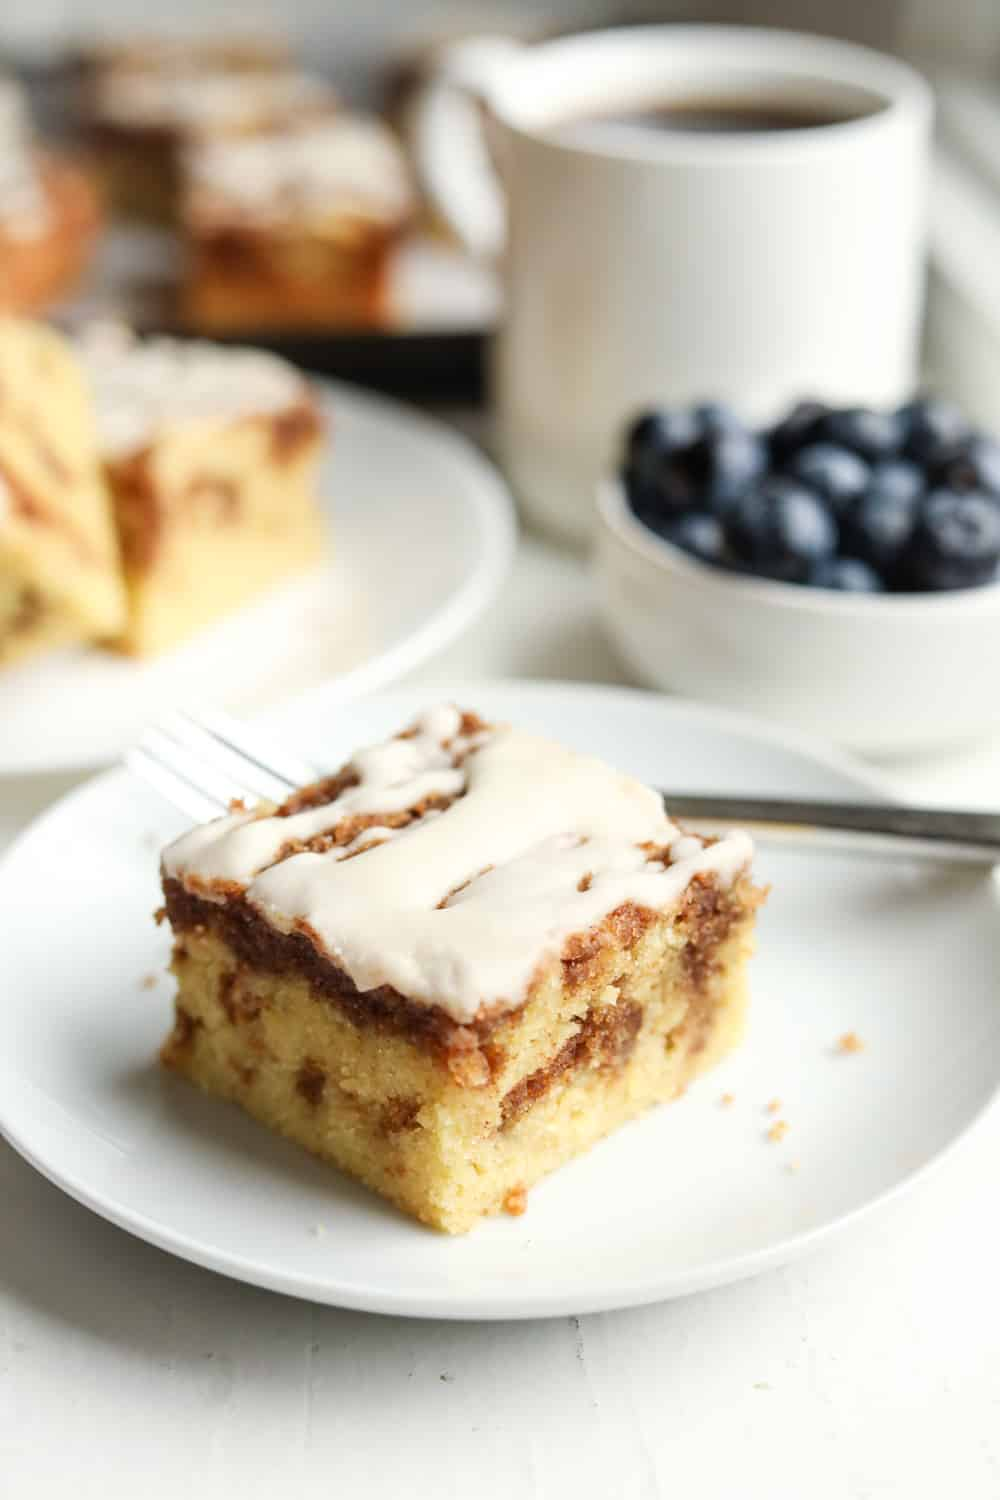 A piece of coffee cake on a white plate with a fork set by it. There's a coffee cup, blueberries, and more pieces of cake set behind the plate.